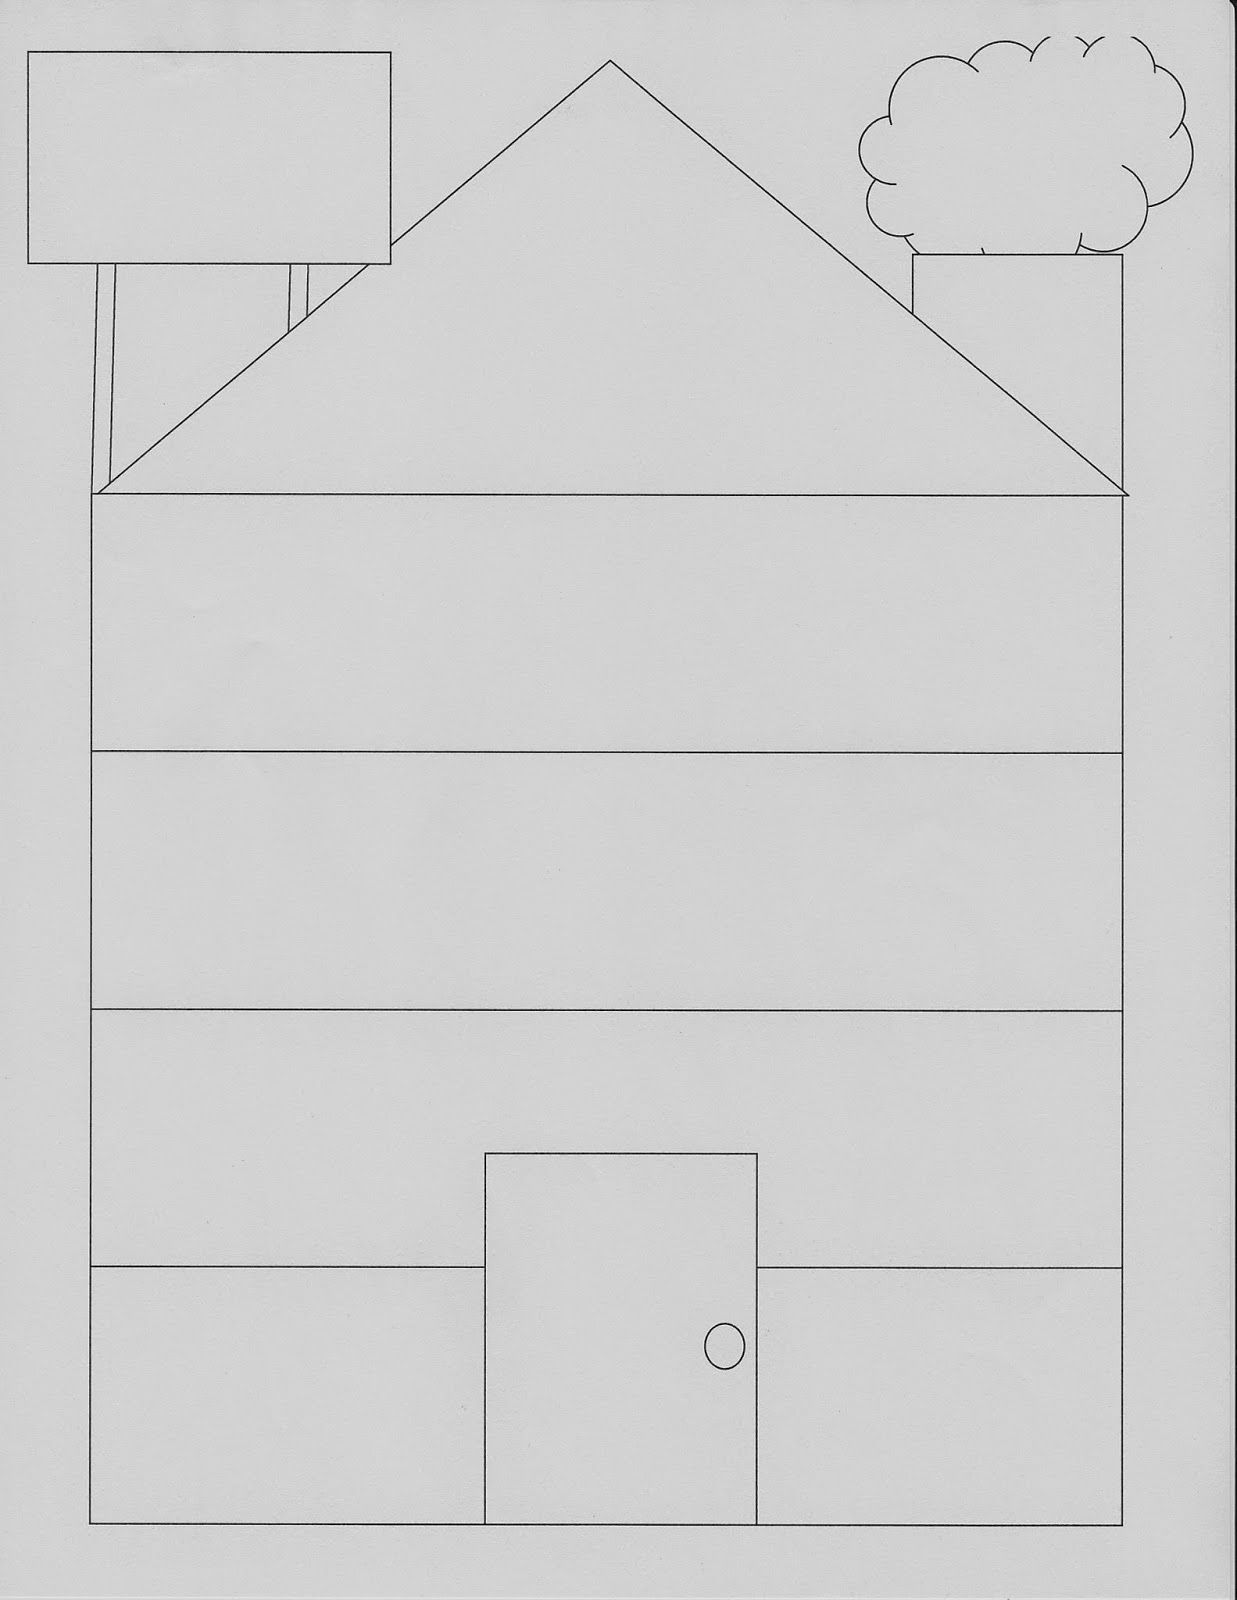 Dbt House See Blog For Template Of Information To Go In